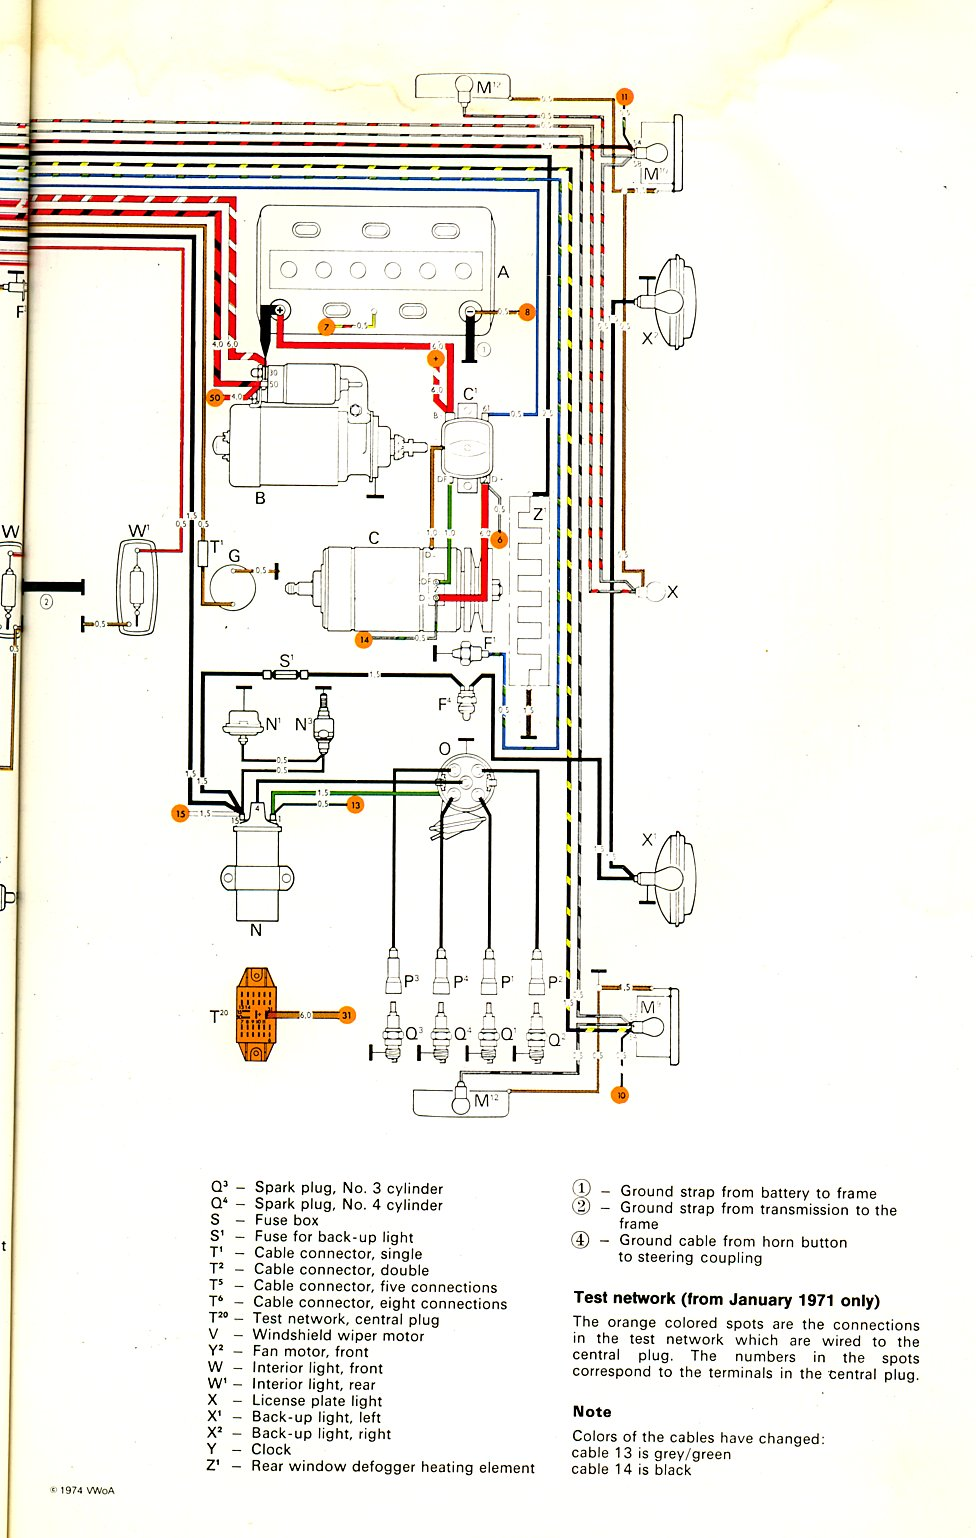 baybus_71b thesamba com type 2 wiring diagrams 1971 corvette wiper wiring diagram at bayanpartner.co